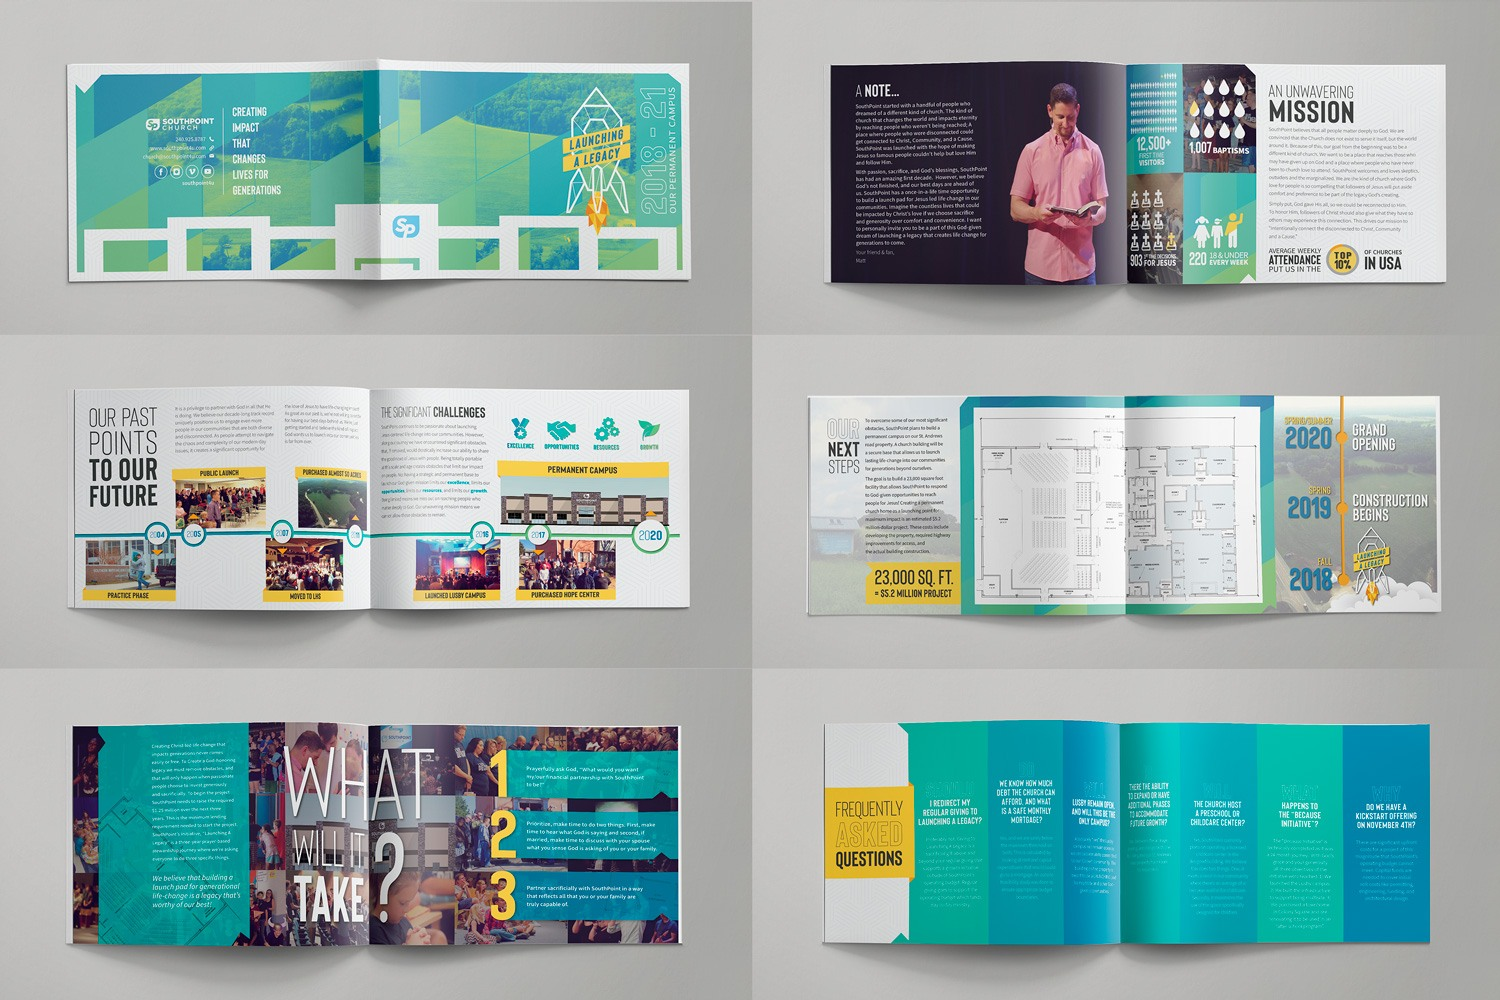 church building capital campaign brochure design materials ideas for stewardship examples